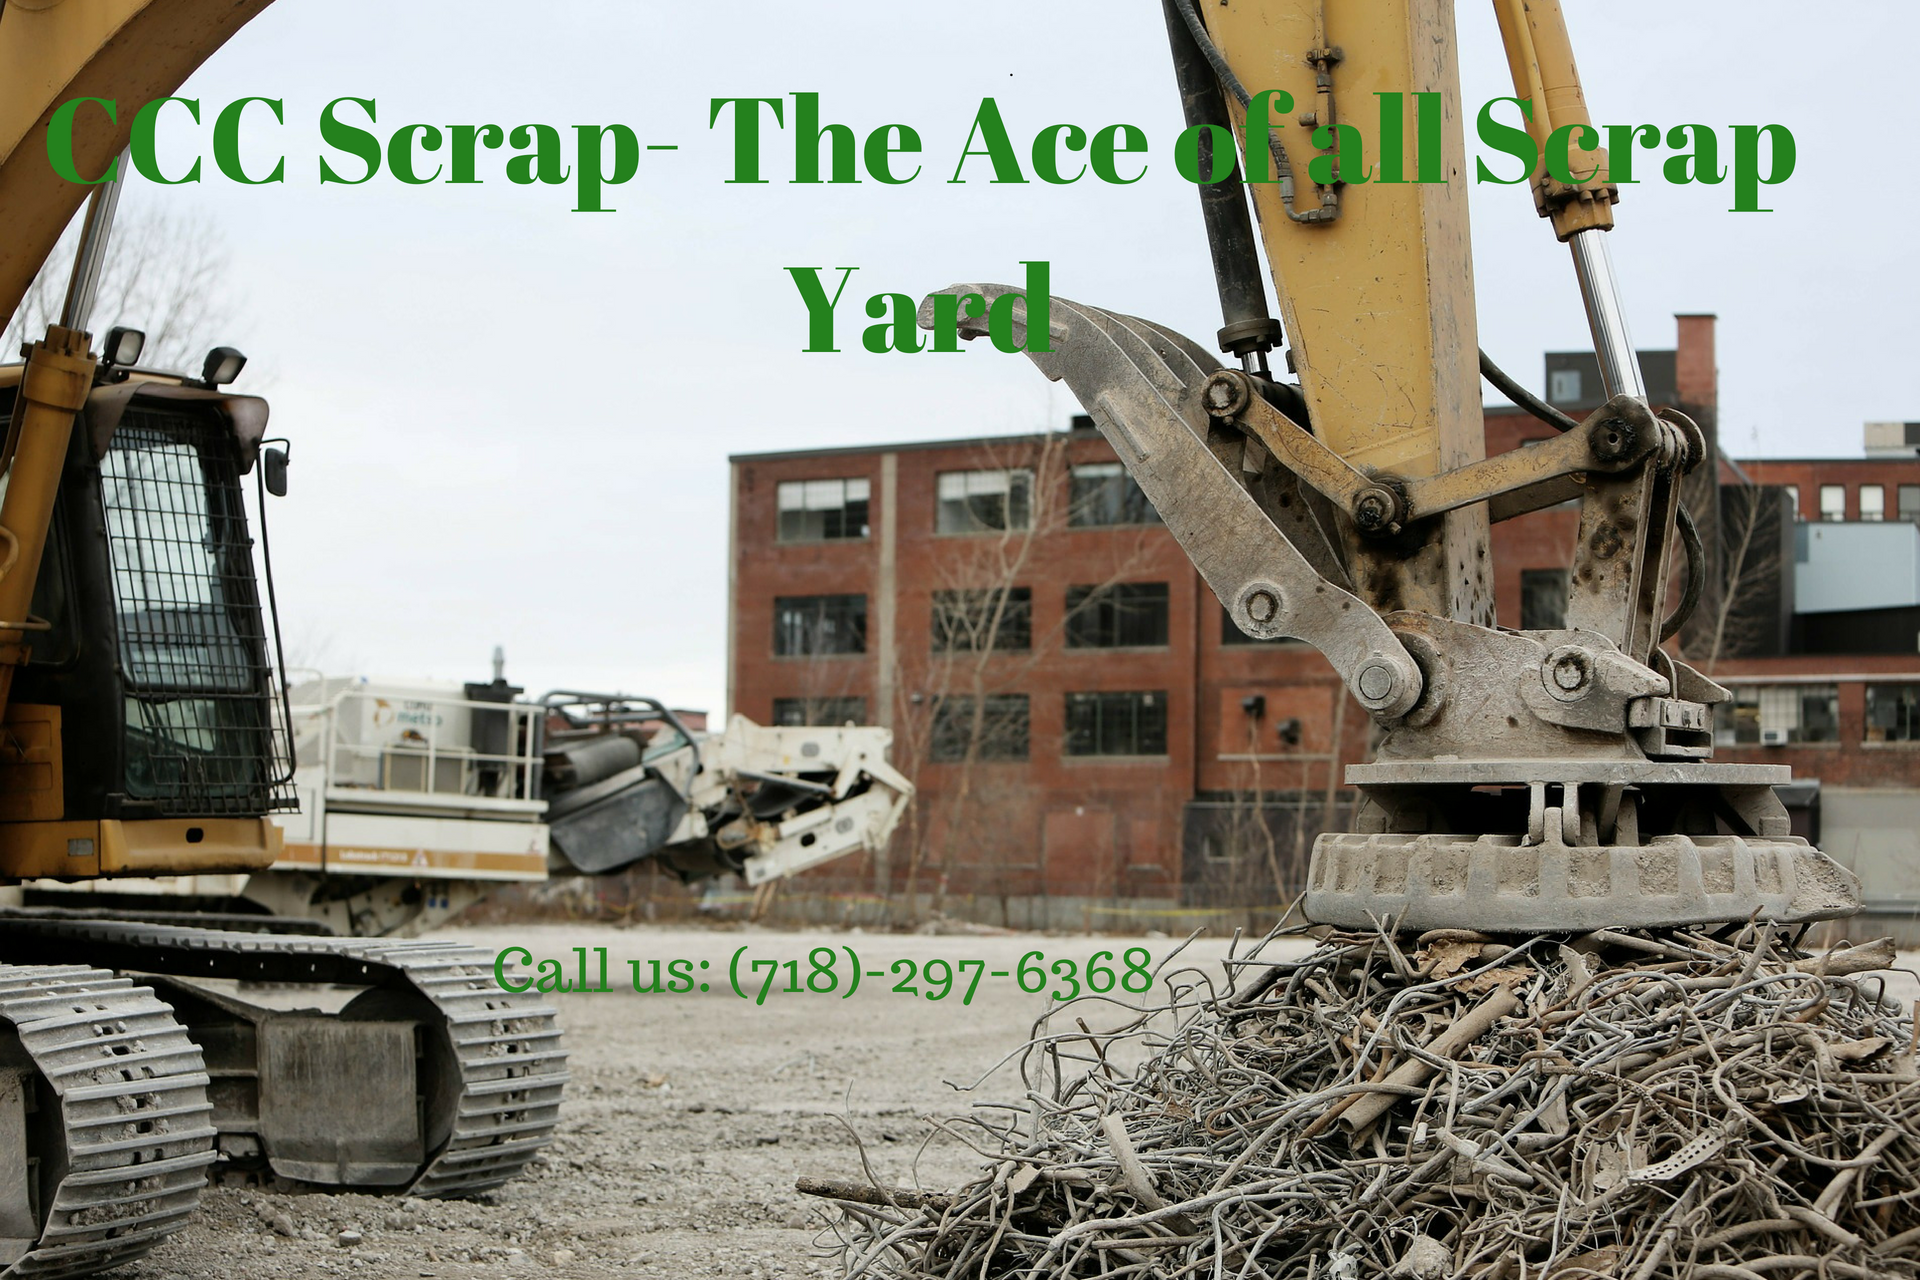 Pin by CCCScrap on Scrap Yard | Metal prices, Manhattan city